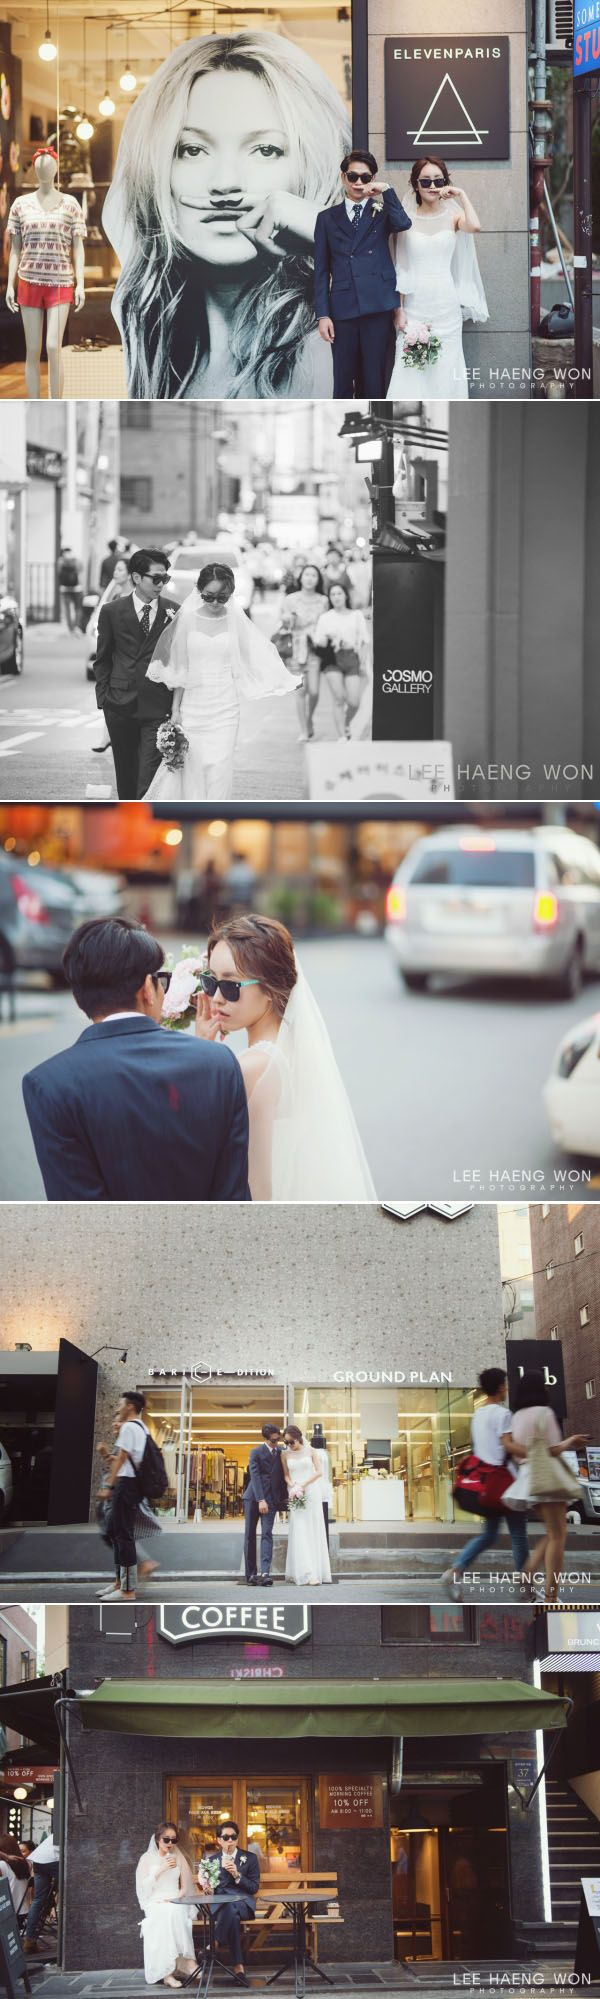 Prewedding photo shoot in Seoul, Korea // Lee Haeng Won on OneThreeOneFour // http://www.onethreeonefour.com/listing/LeeHaengWonPhotography/55a2205fc75a109b4147262b